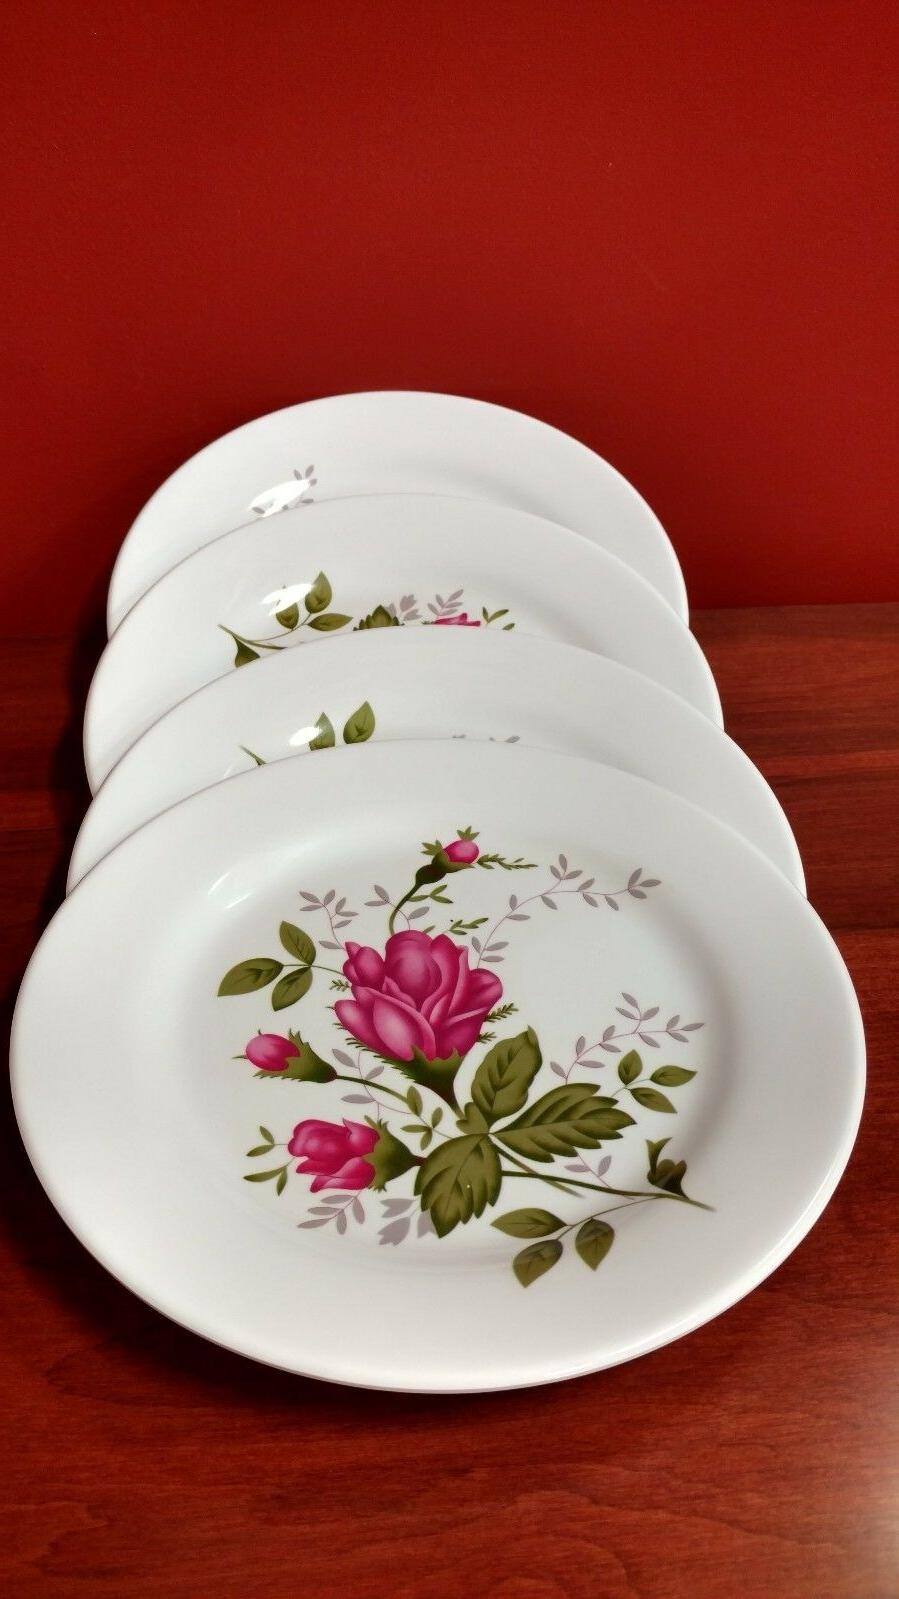 Brand New! inch Melamine Dinner Plates with Rose